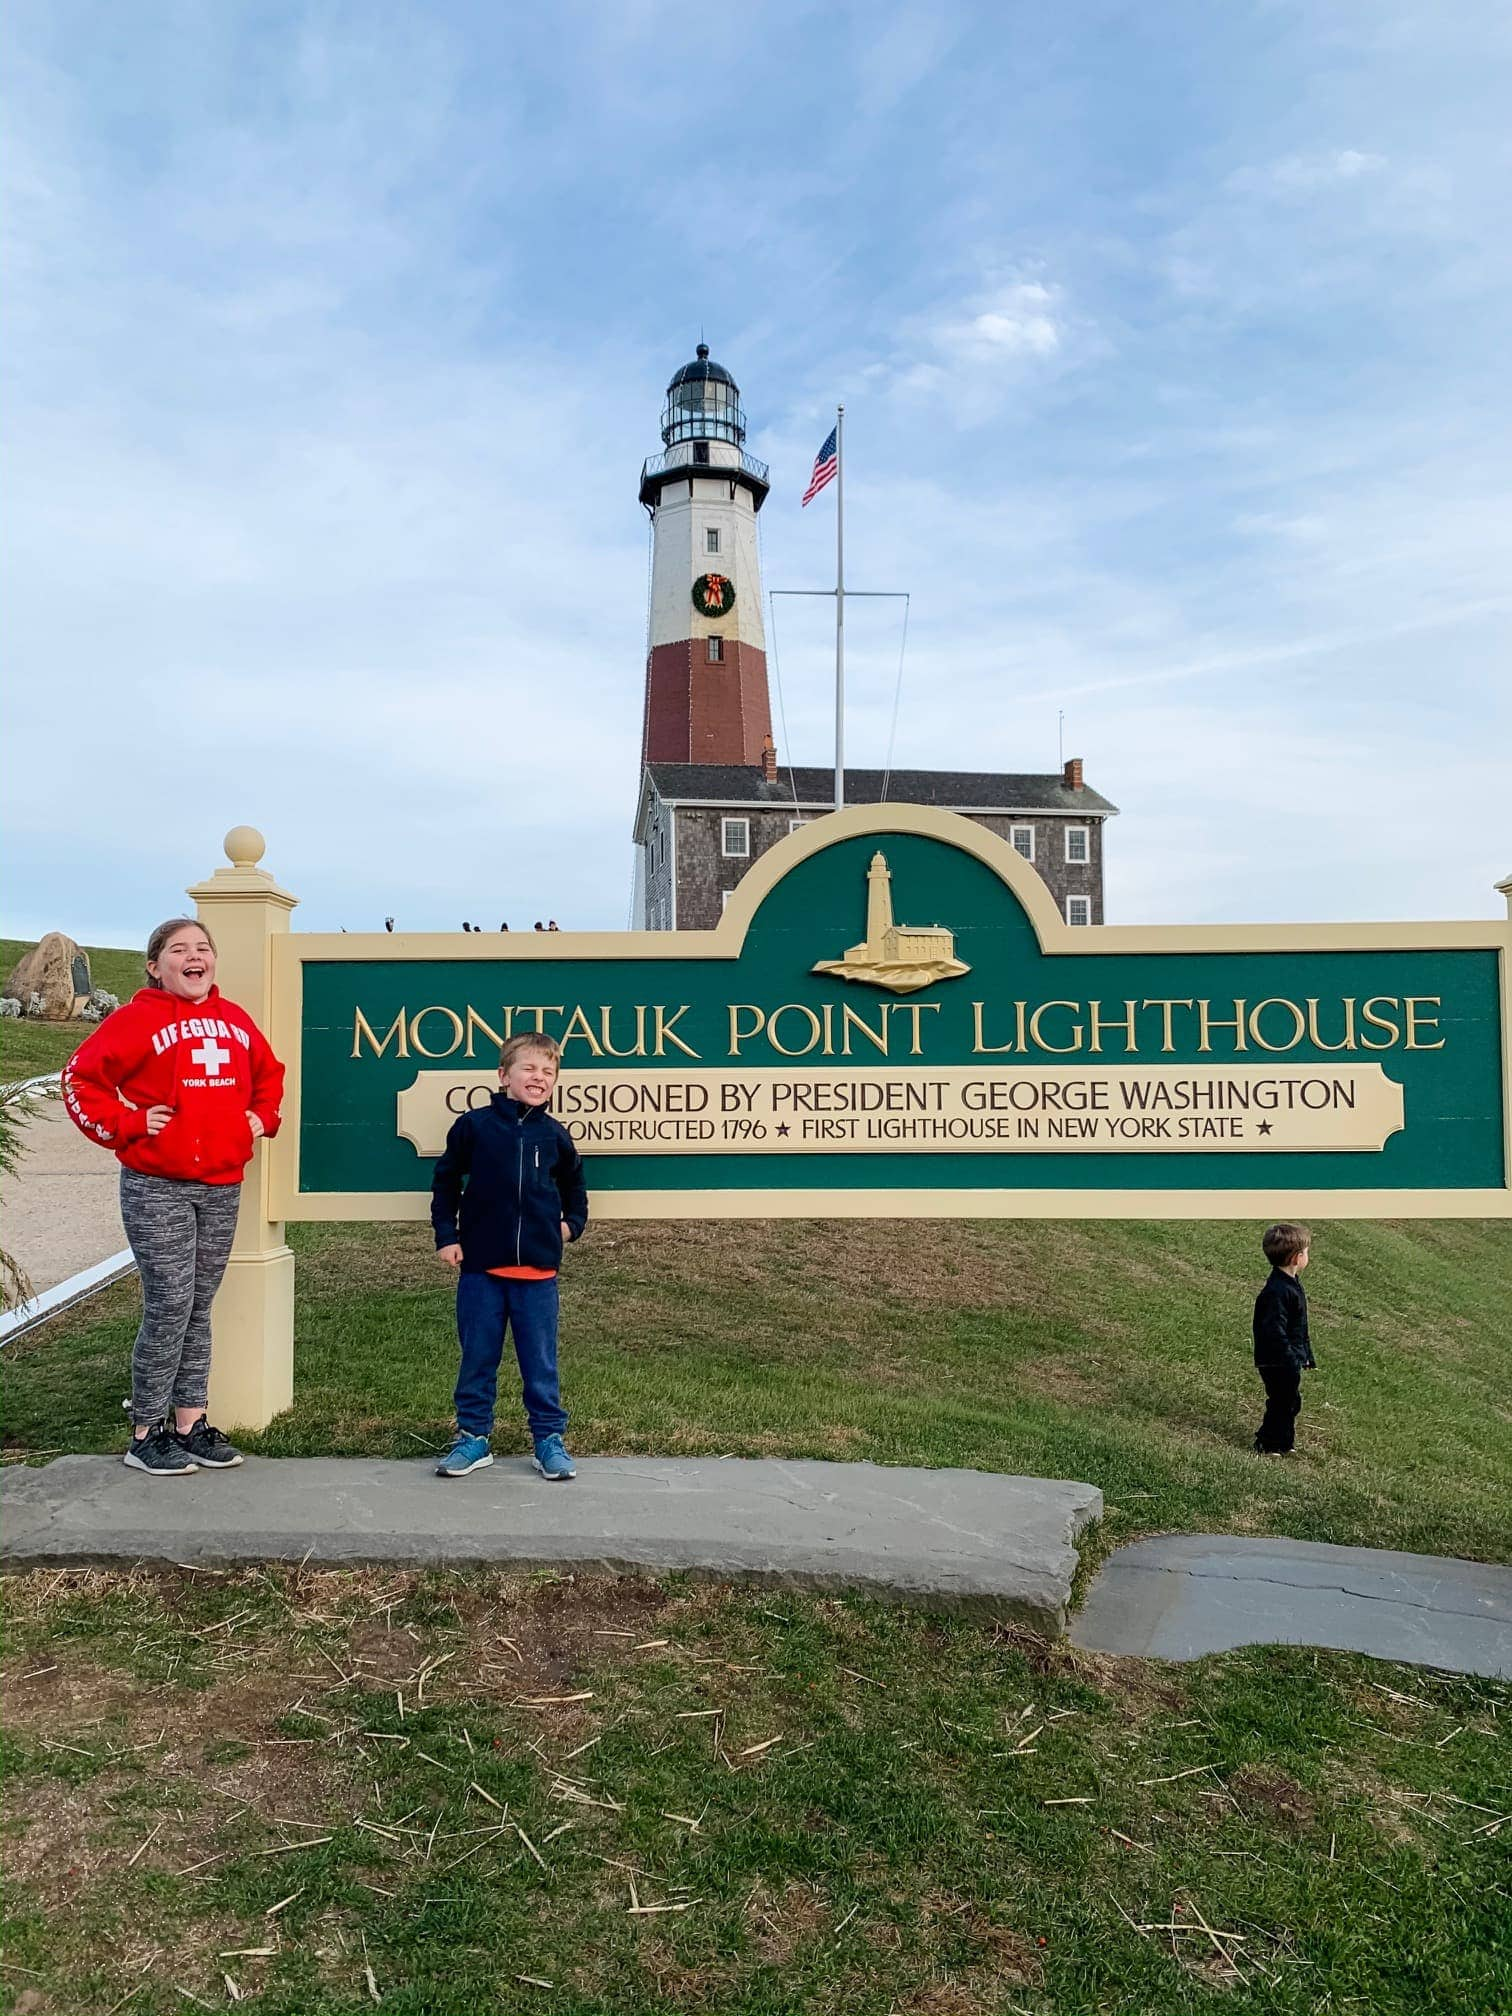 Kids standing in front of a lighthouse and sign